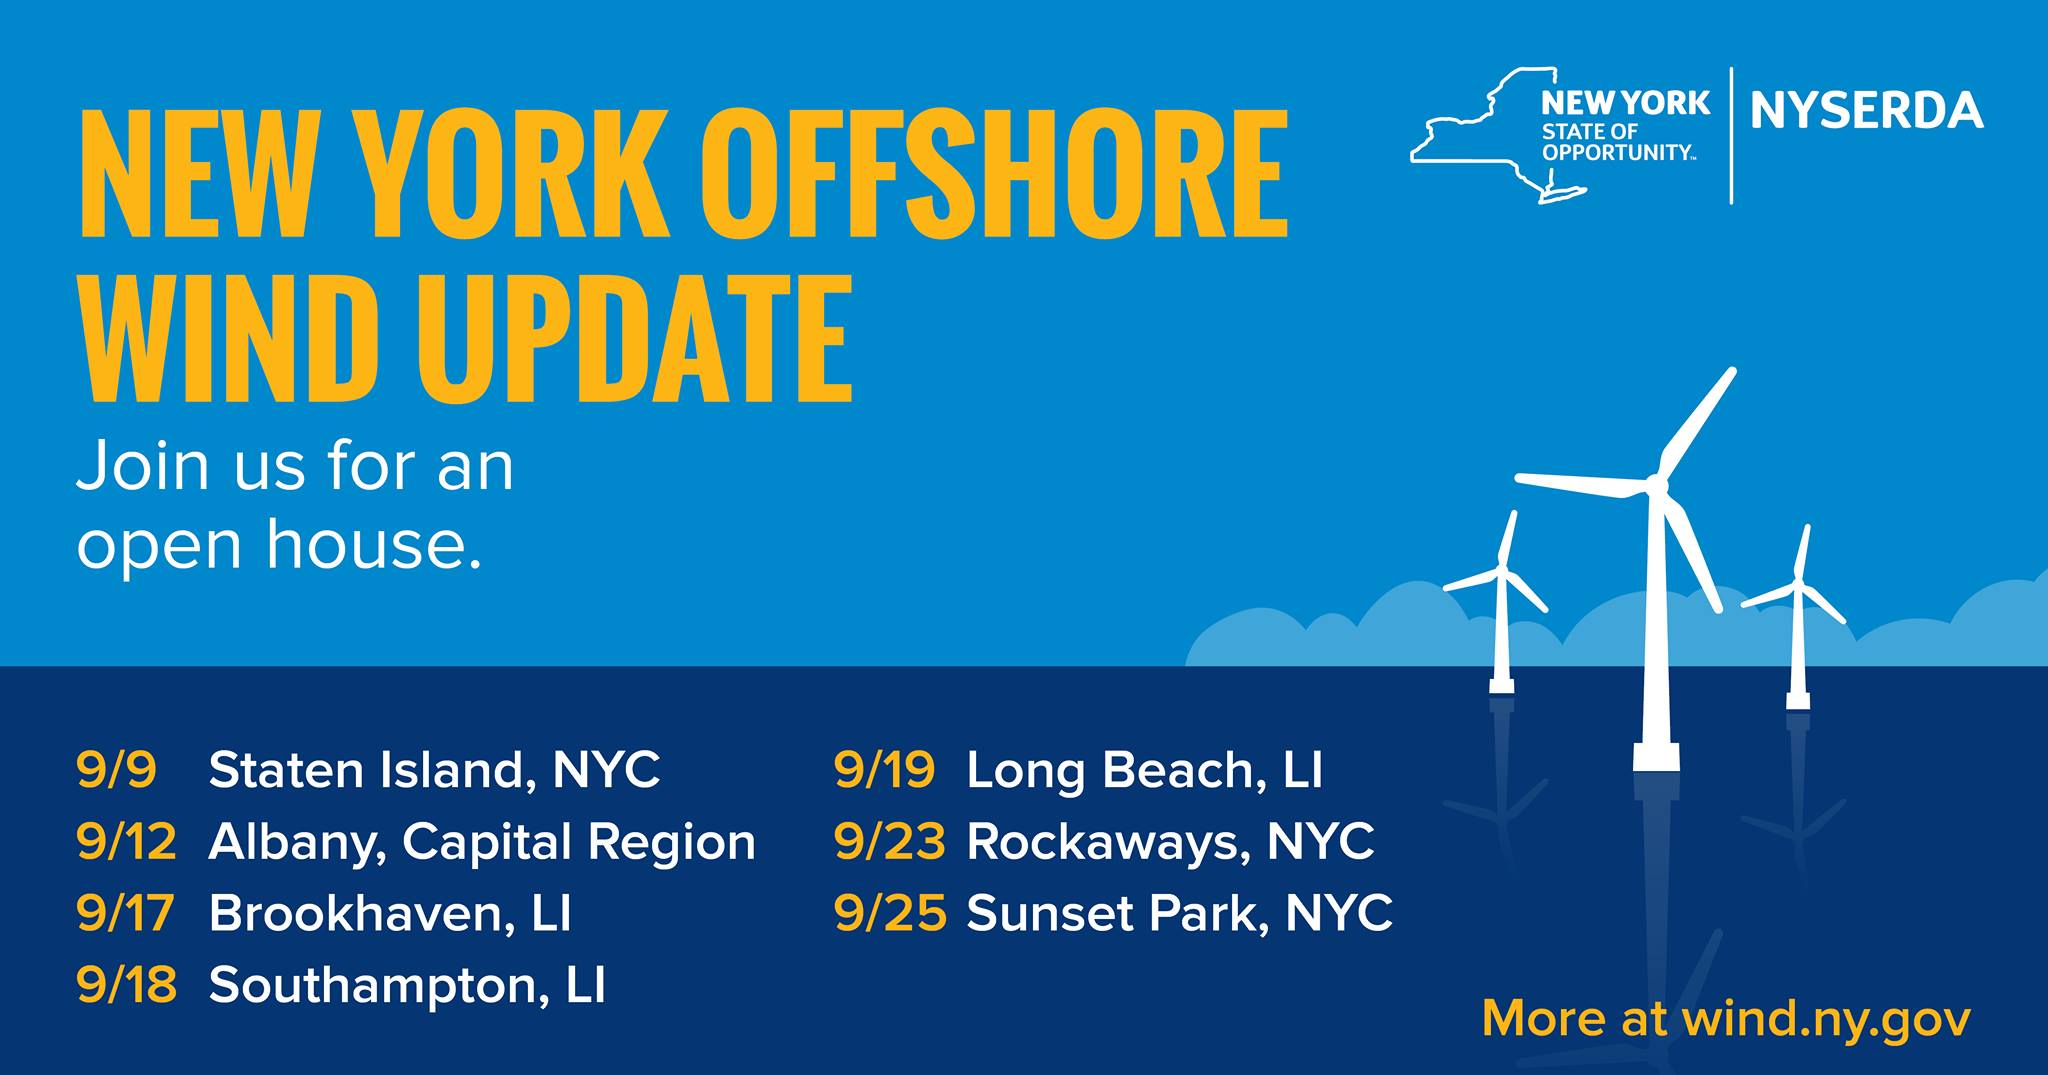 NYSERDA Offshore Wind Open Houses Sep. 2019